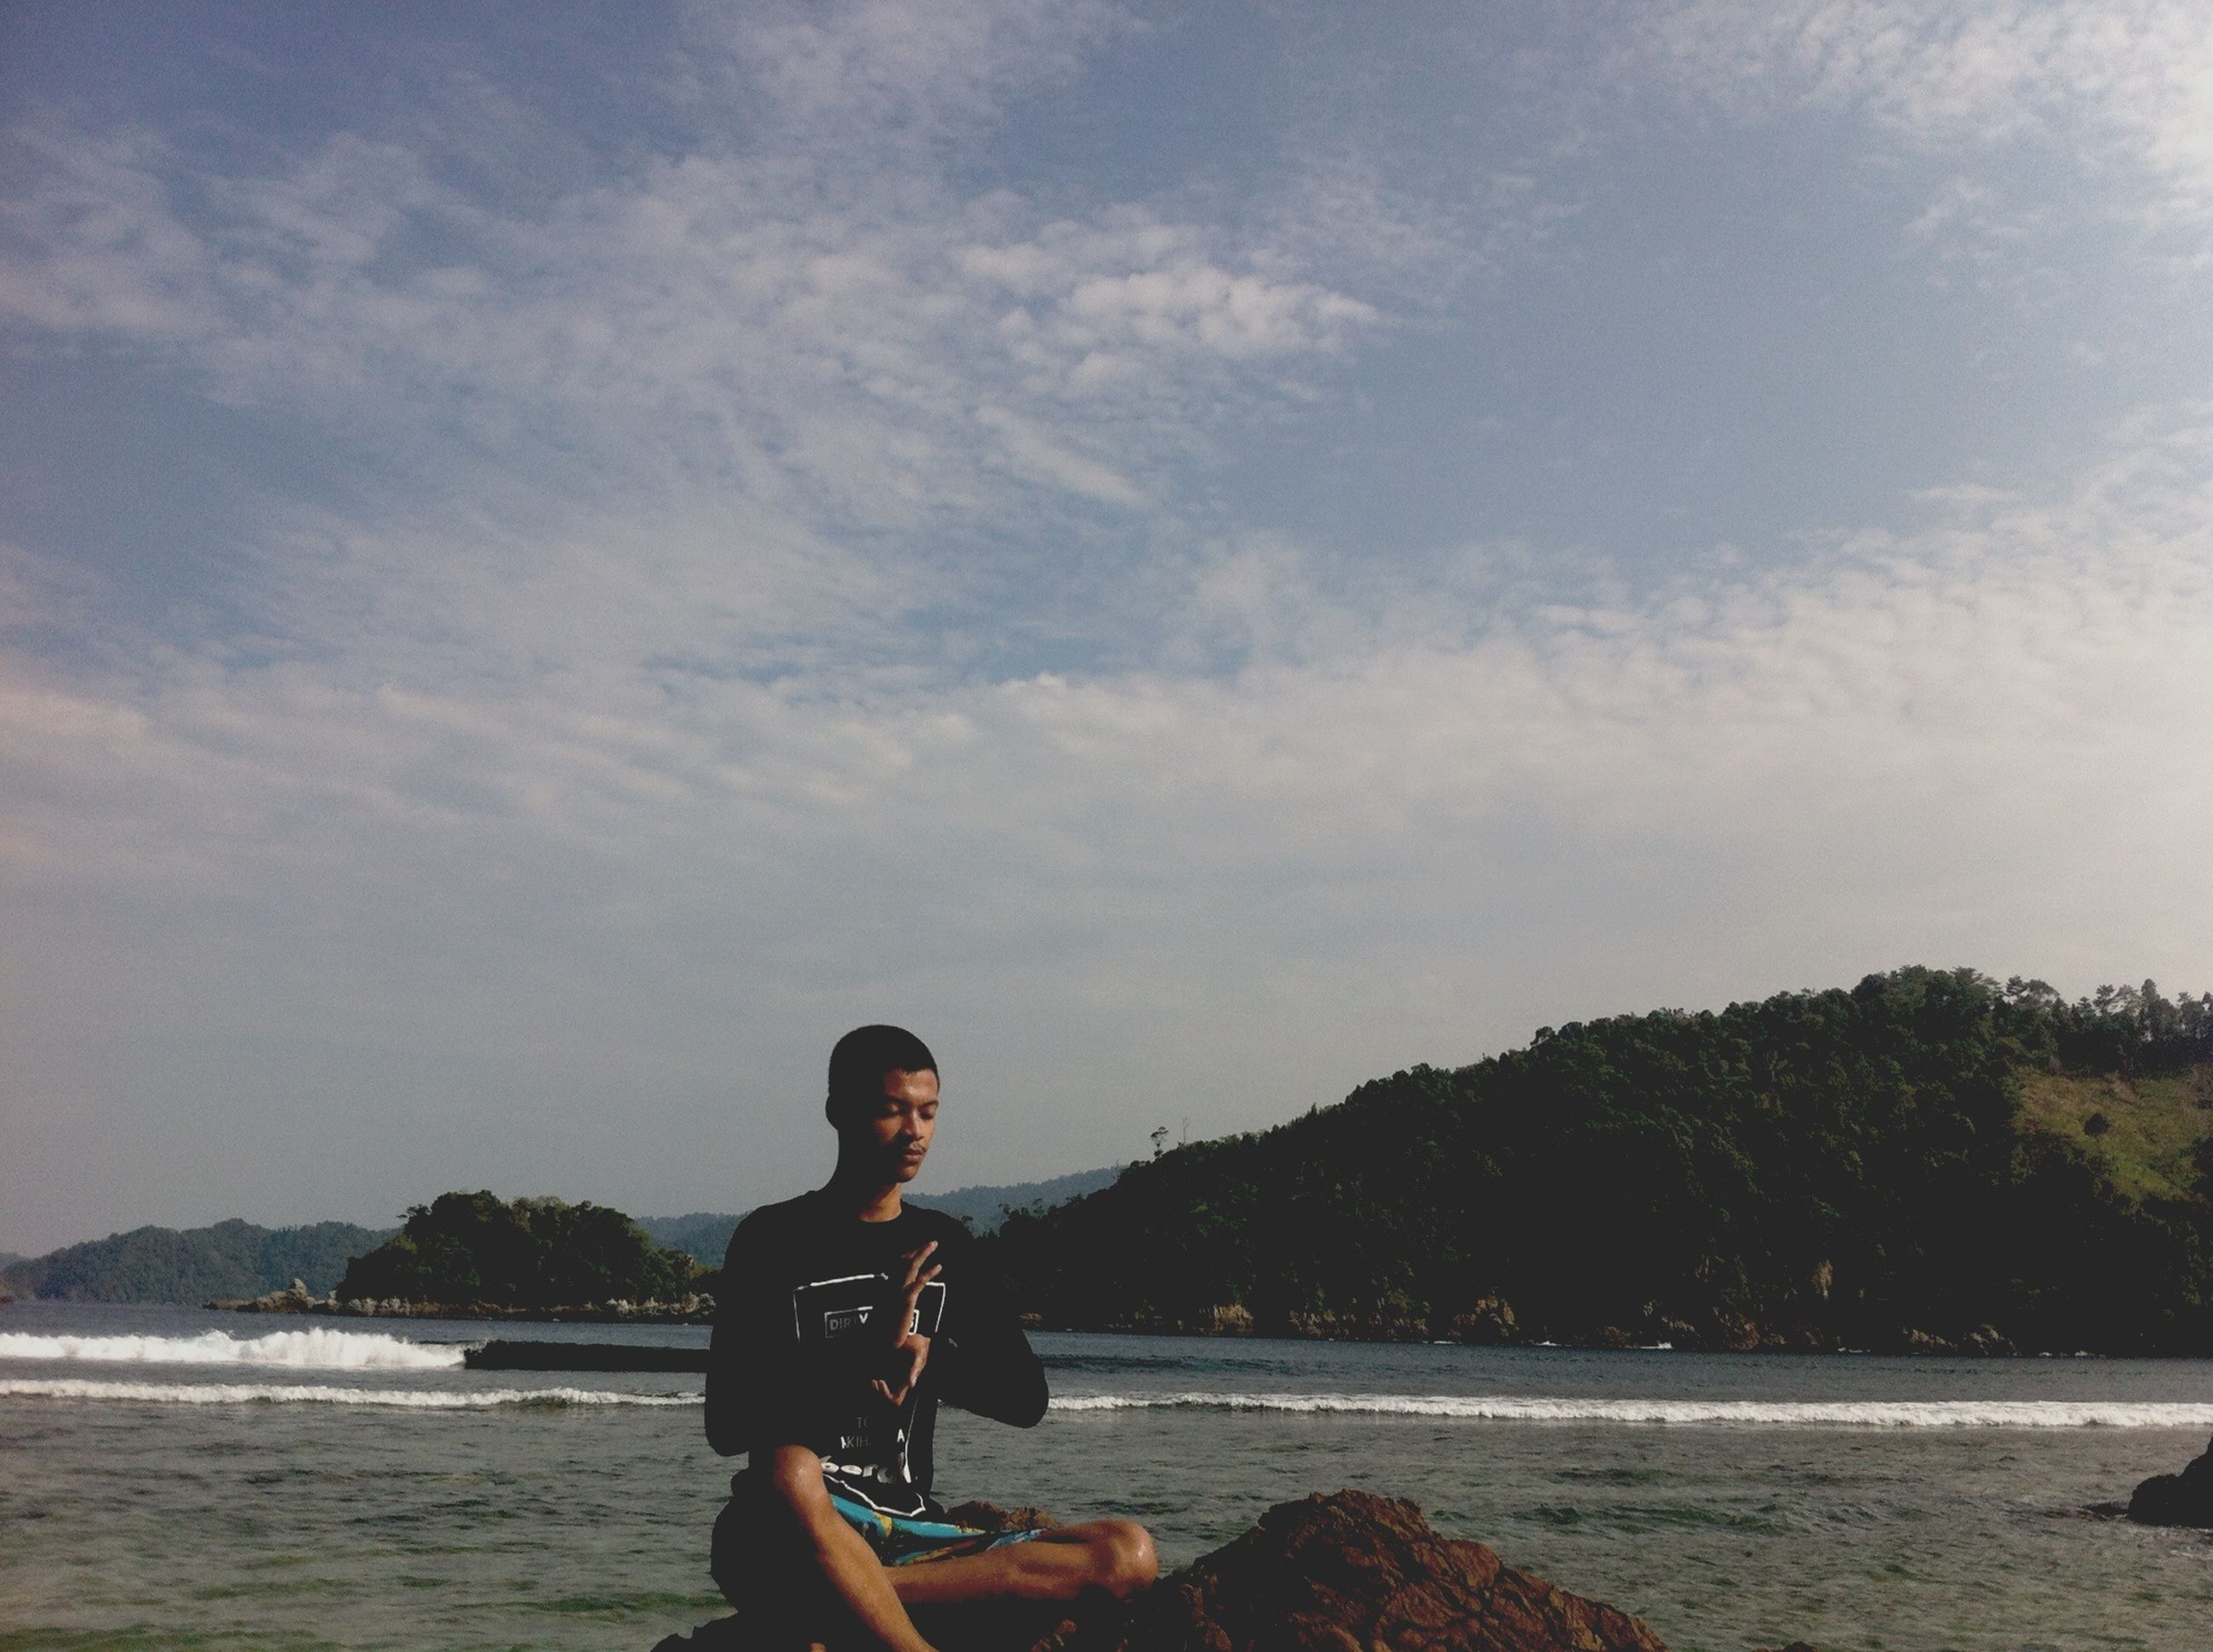 water, lifestyles, leisure activity, sky, young adult, sea, person, casual clothing, tranquility, nature, vacations, beauty in nature, sitting, scenics, three quarter length, beach, tranquil scene, standing